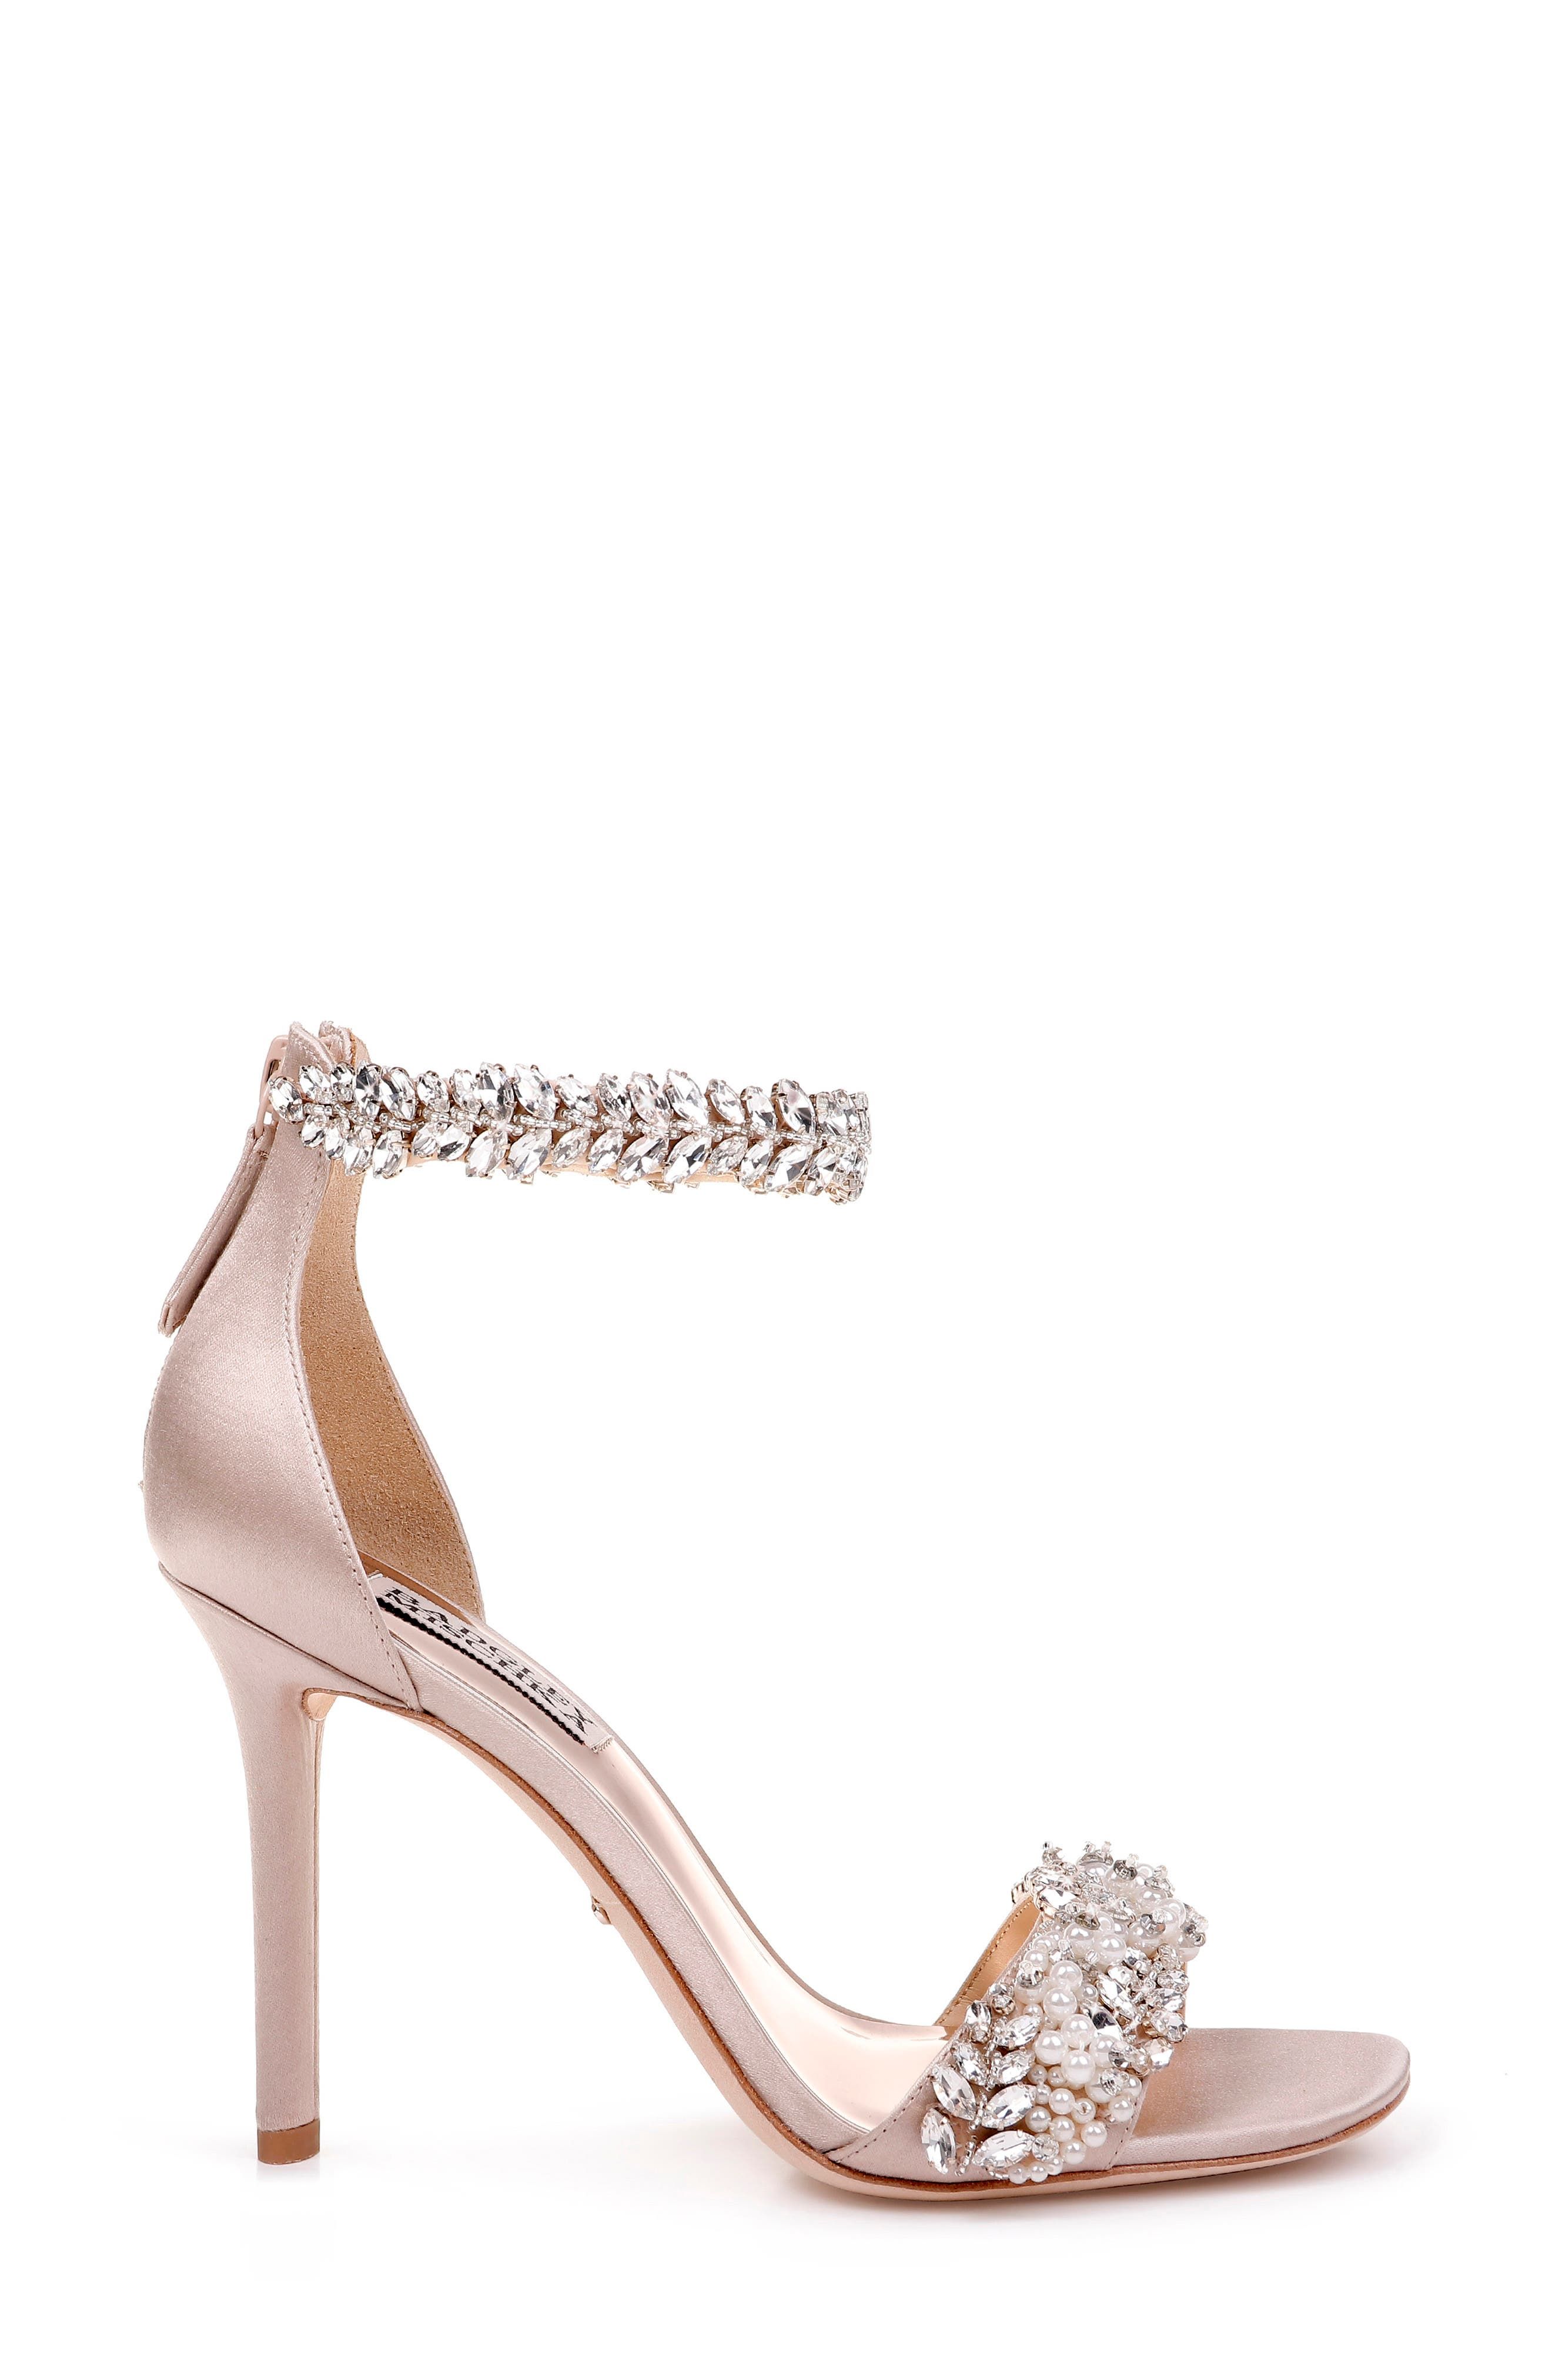 BADGLEY MISCHKA COLLECTION, Badgley Mischka Fiorenza Crystal & Imitation Pearl Embellished Sandal, Alternate thumbnail 3, color, BEIGE SATIN